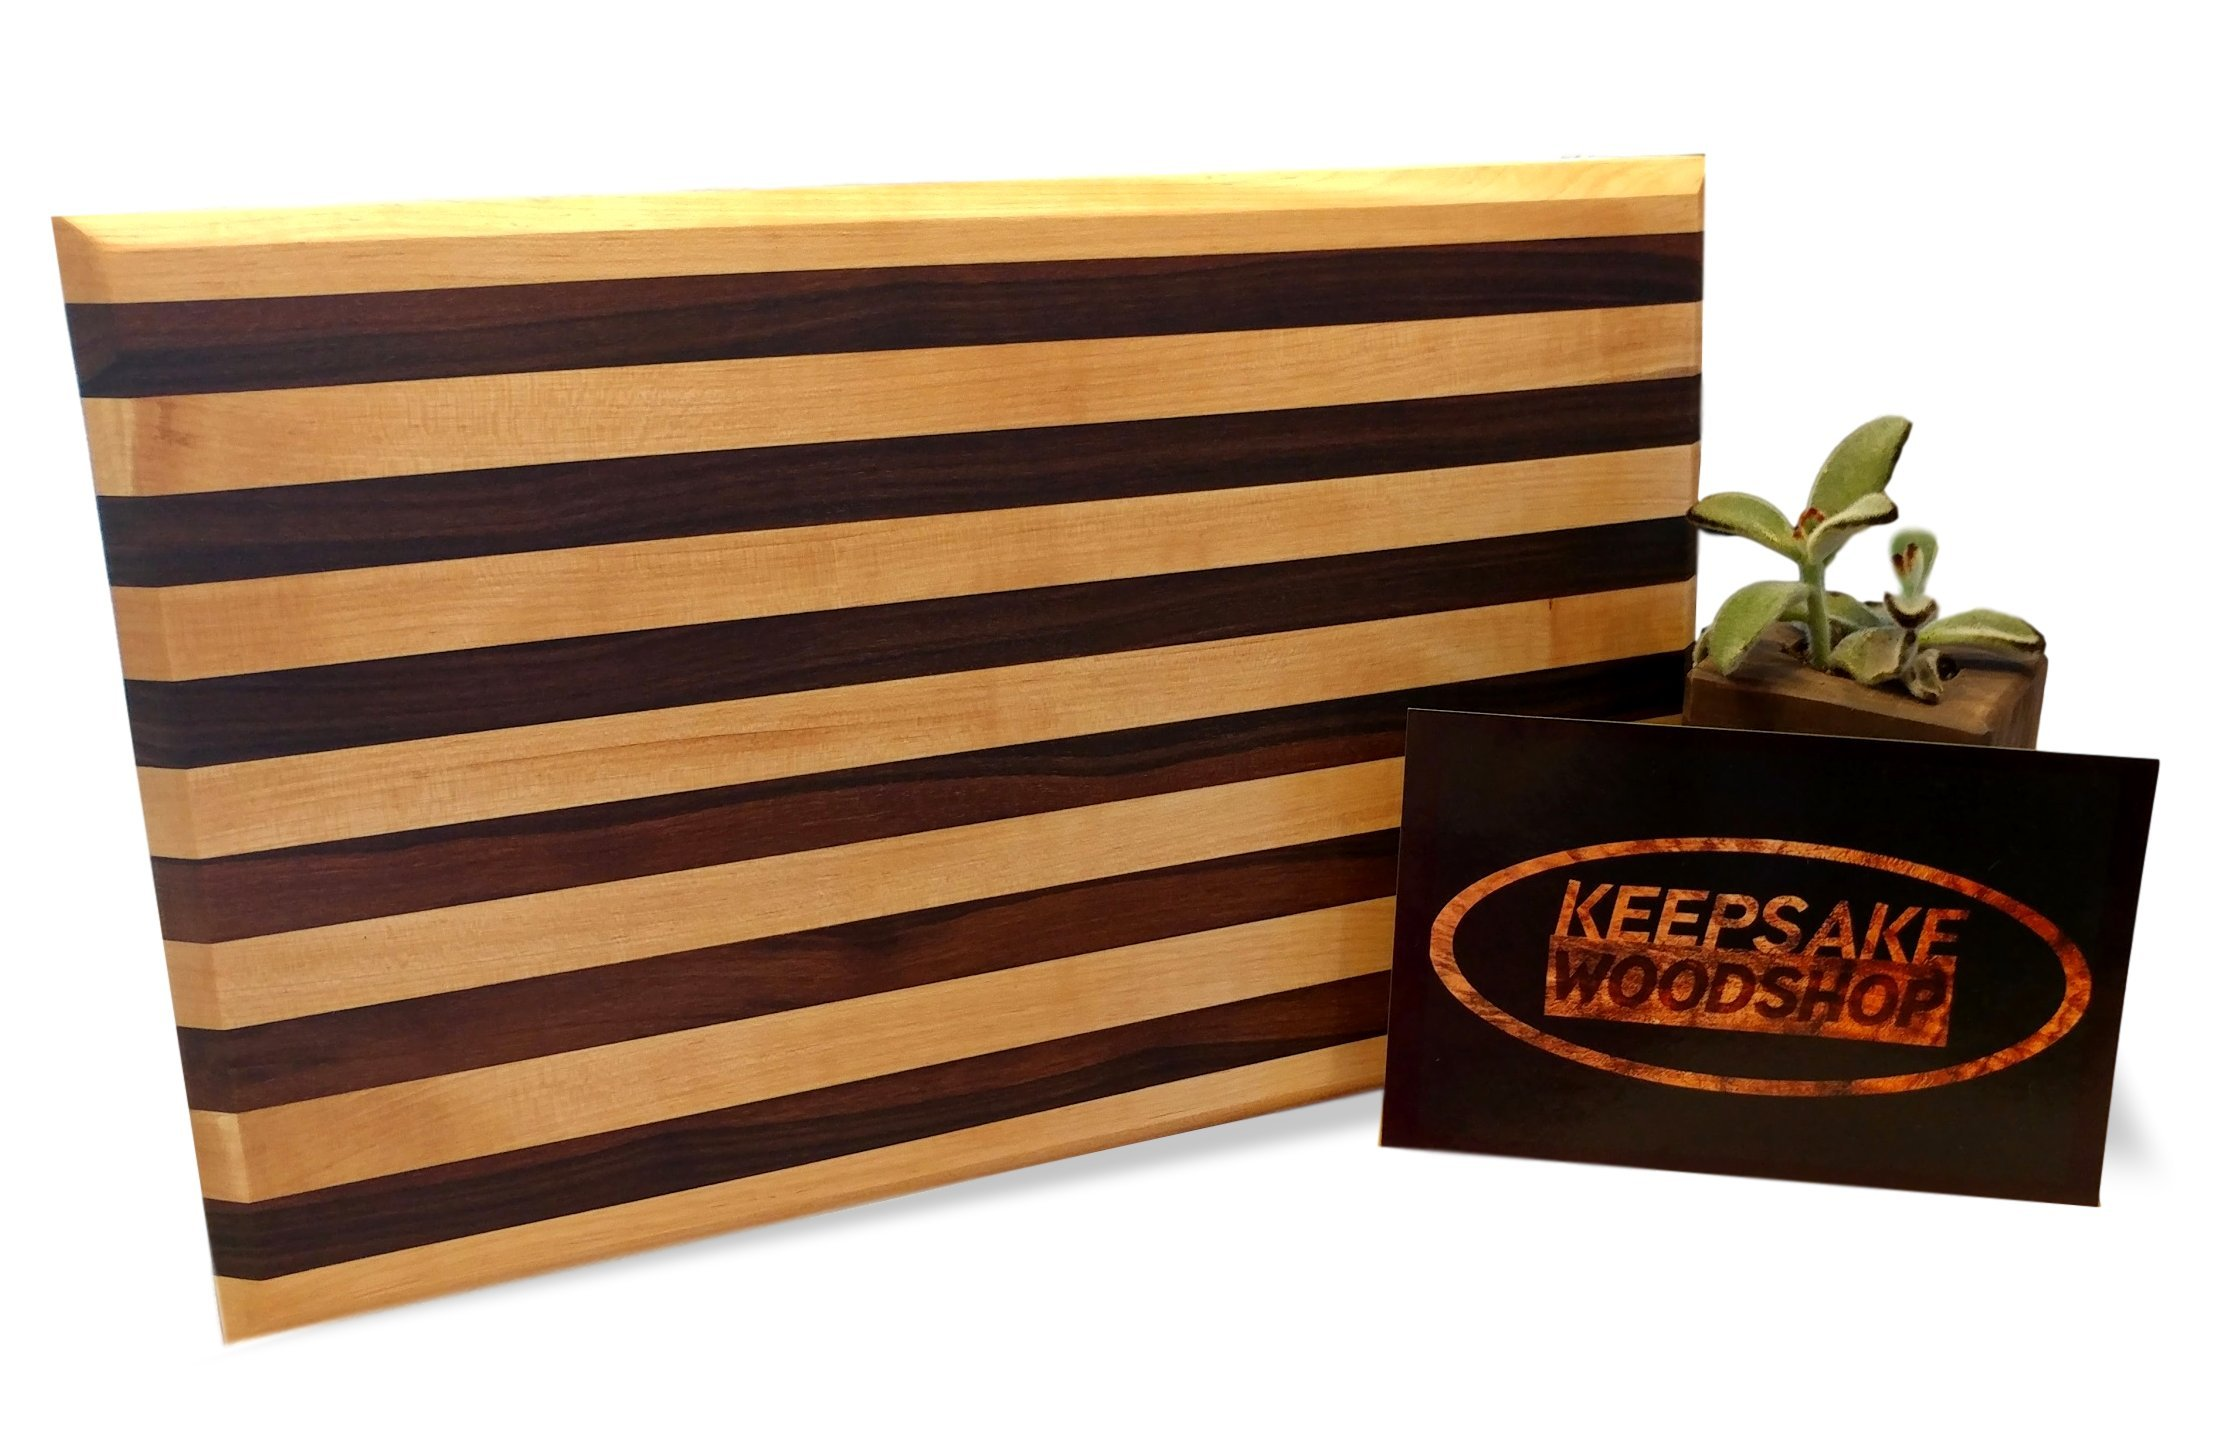 Wood Cutting Board – Maple and Walnut Large 18 x 12 x 1 – Reversible, Handcrafted Carving Board Serving Platter, Dual Purpose Use for Chopping, Serving, Cheese, Charcuterie and Appetizers by Keepsake Woodshop